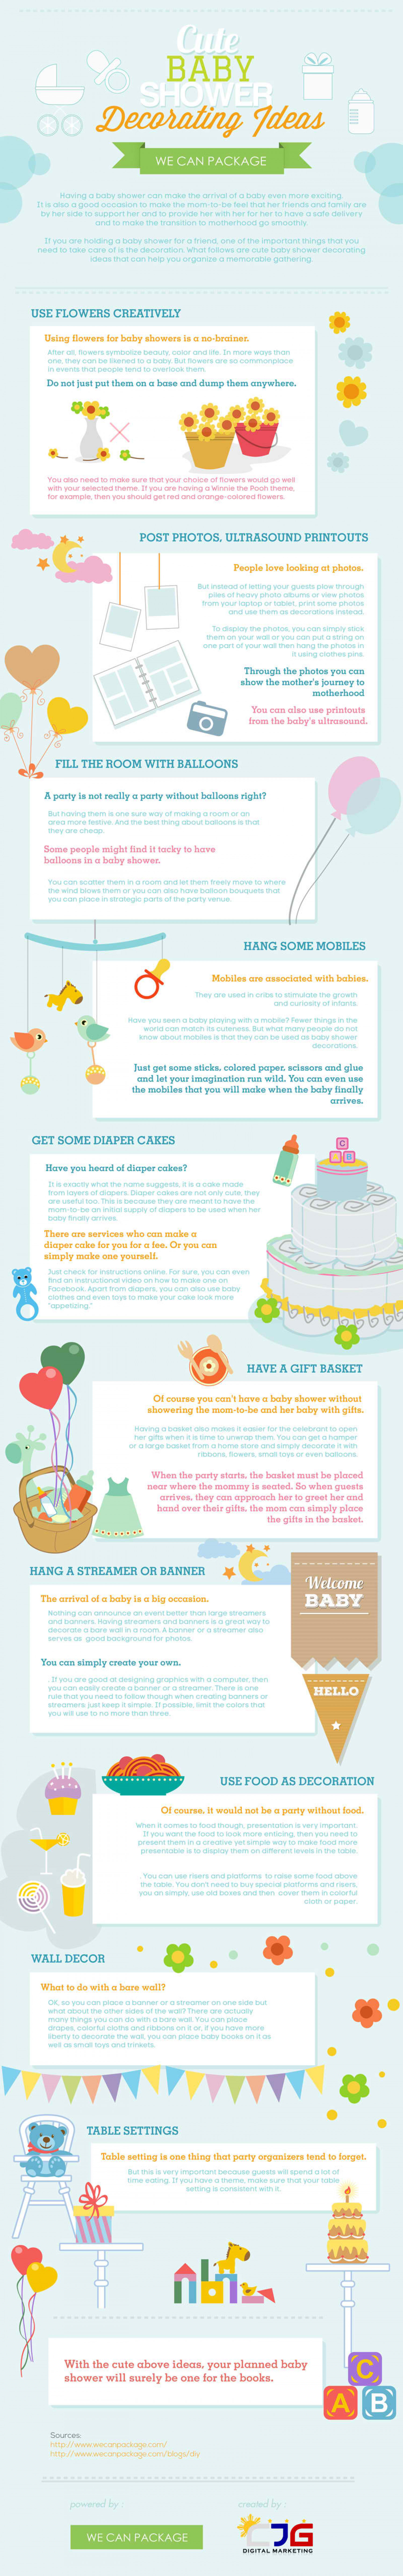 Cute Baby Shower Decorating Ideas (Infographic) Infographic